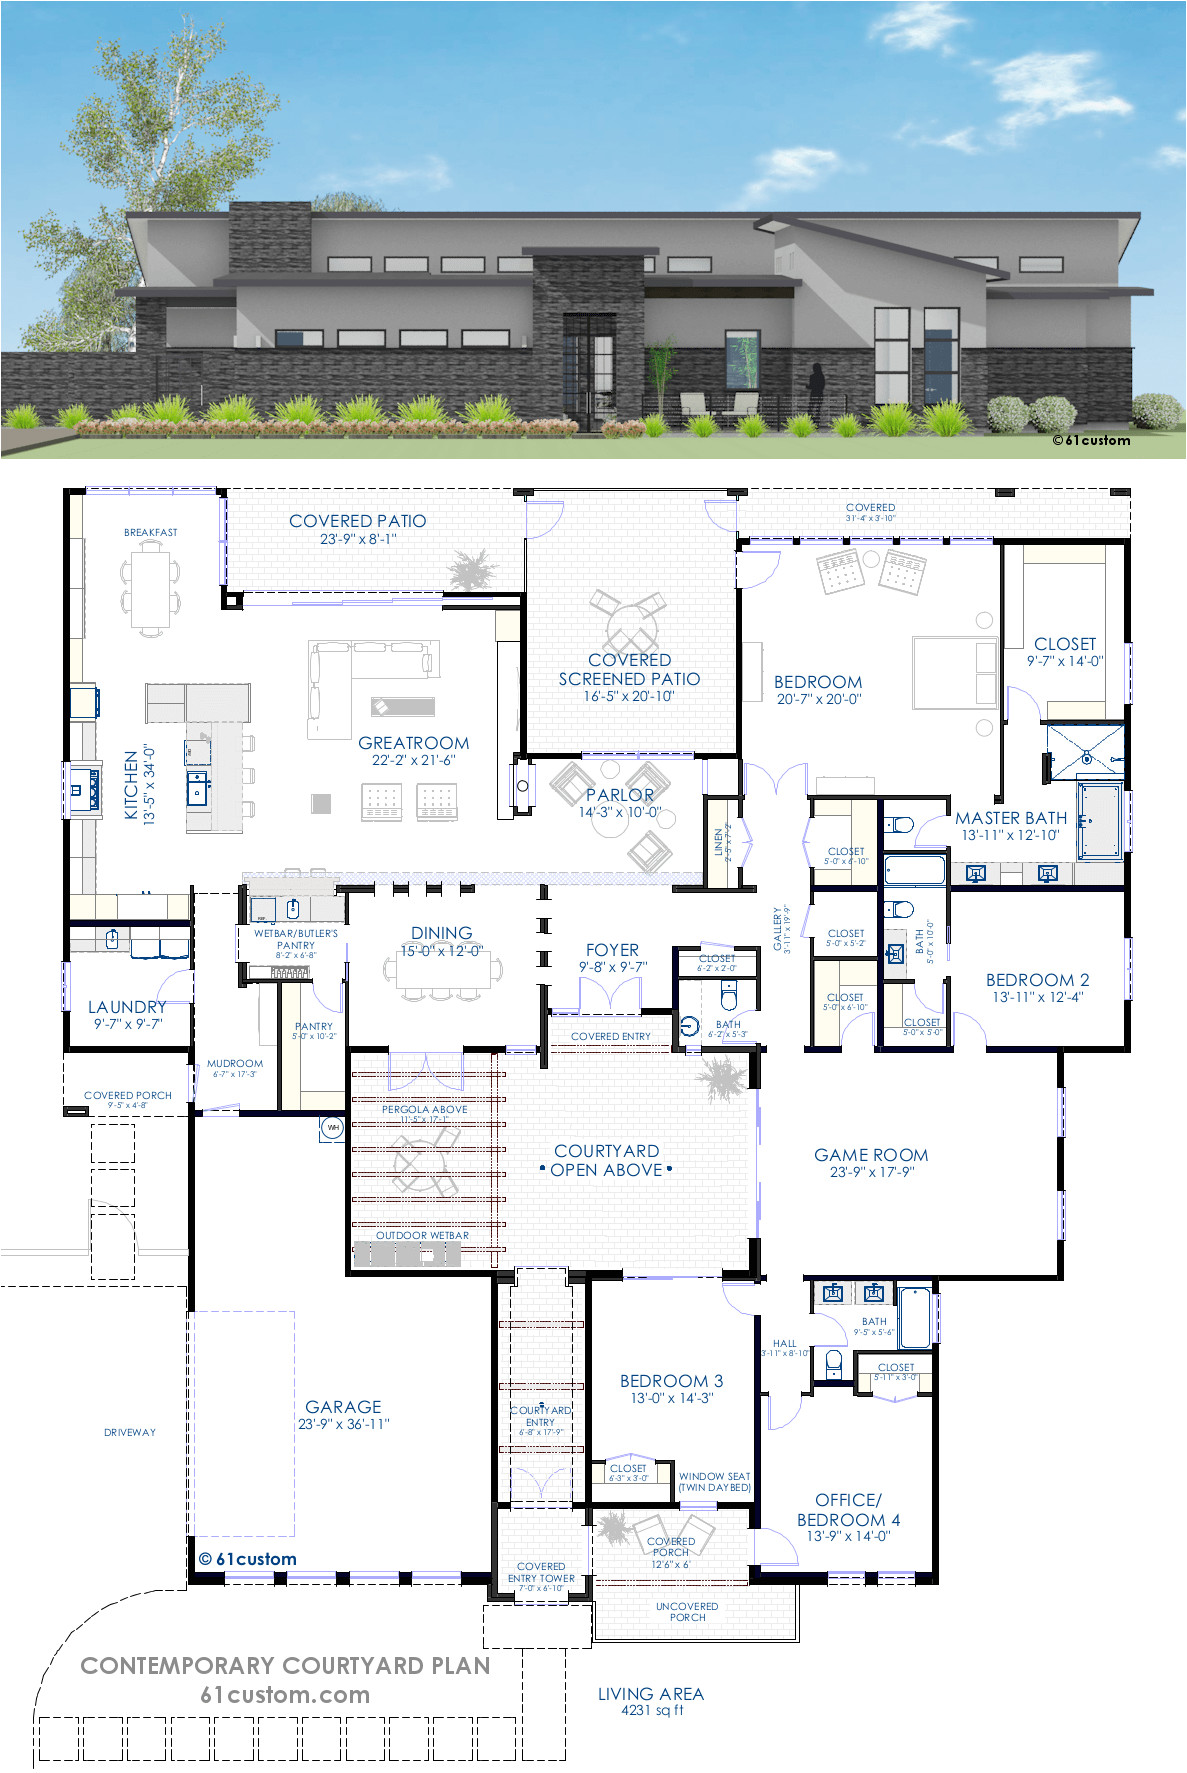 Courtyard Homes Plans Contemporary Courtyard House Plan 61custom Modern